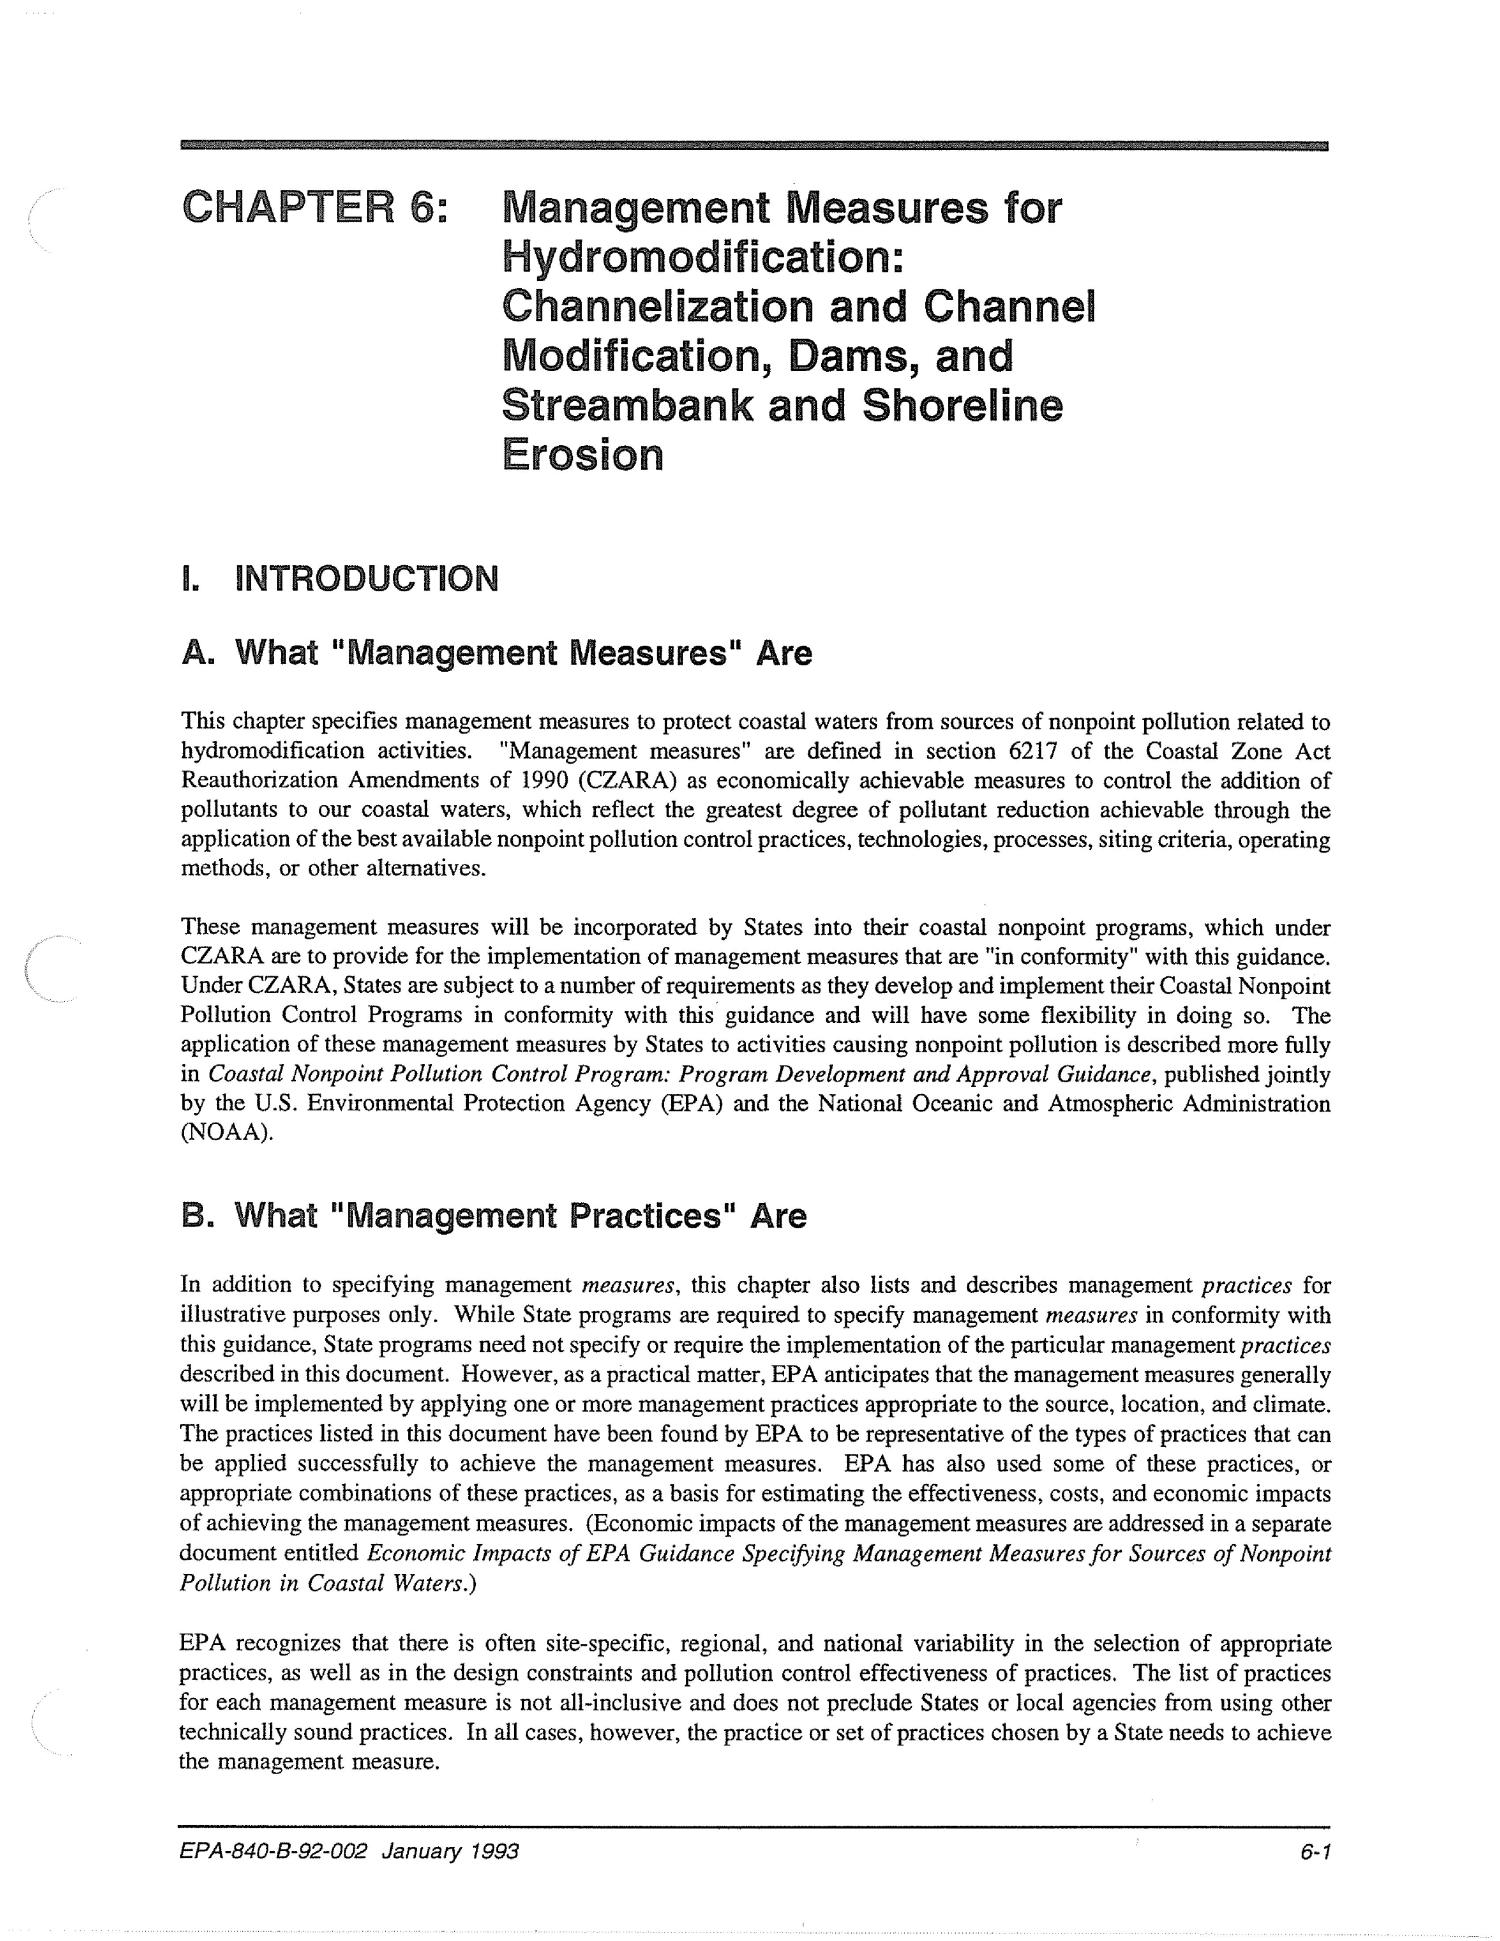 Chapter 6: Management Measures for Hydromodification: Channelization and Channel Modification, Dams, and Streambank and Shoreline Erosion                                                                                                      [Sequence #]: 1 of 110